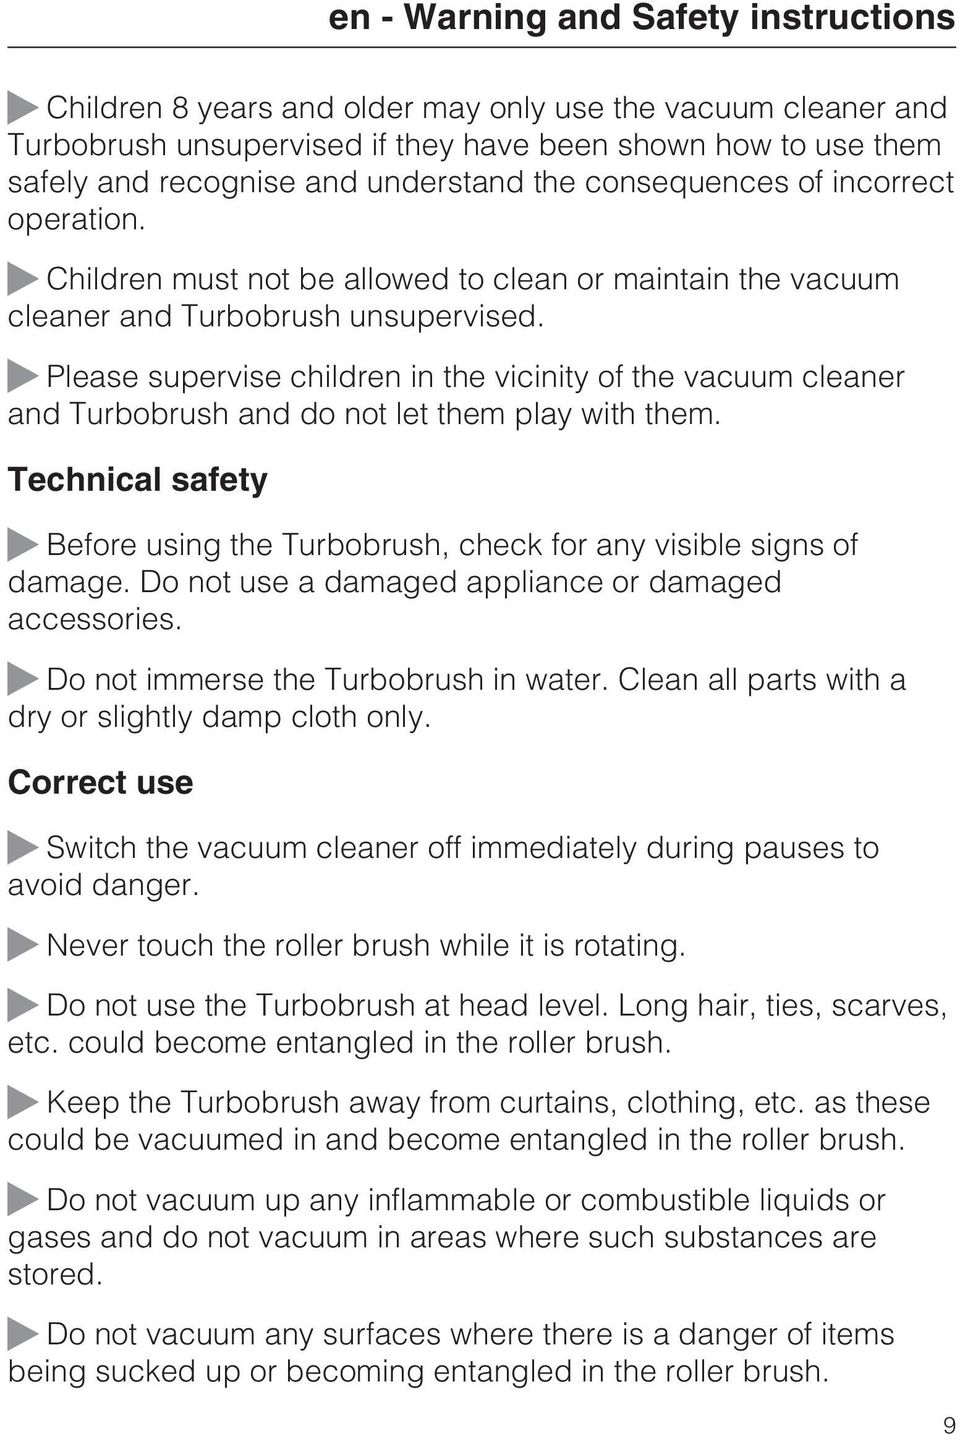 Please supervise children in the vicinity of the vacuum cleaner and Turbobrush and do not let them play with them. Technical safety Before using the Turbobrush, check for any visible signs of damage.